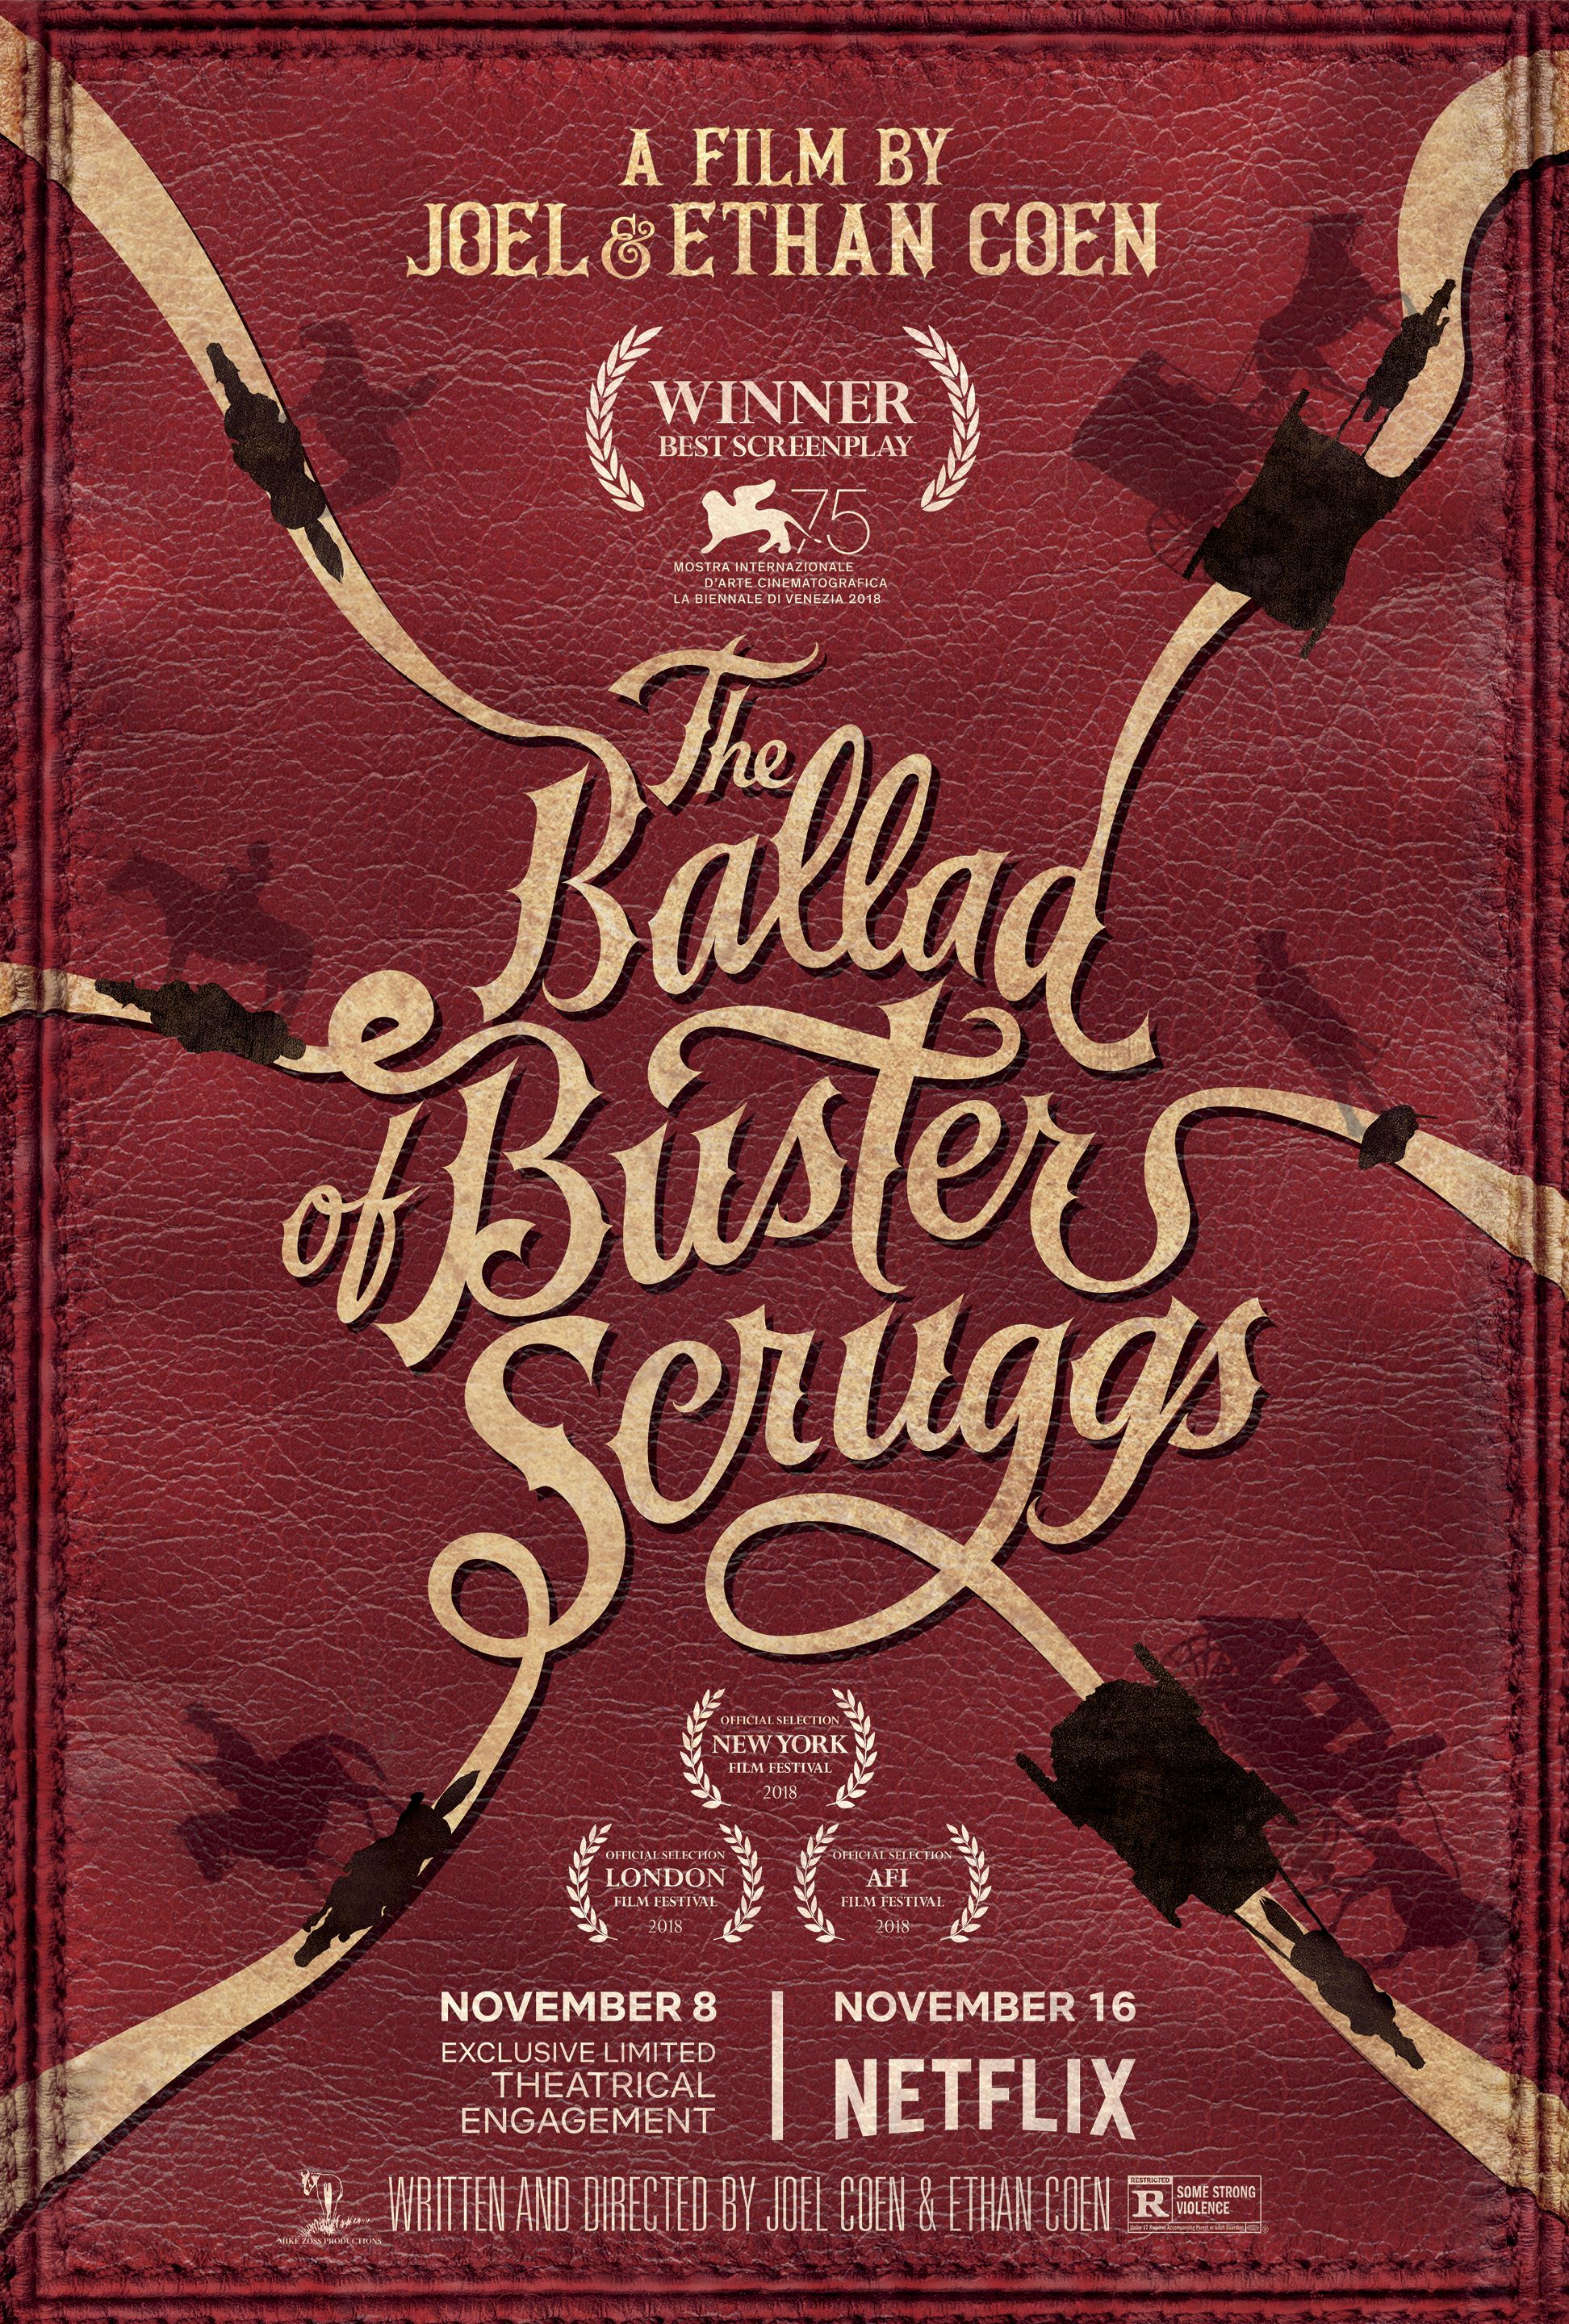 The Ballad of Buster Scruggs   (2018) dir. Joel and Ethan Coen Rated: R image: ©2018  Netflix